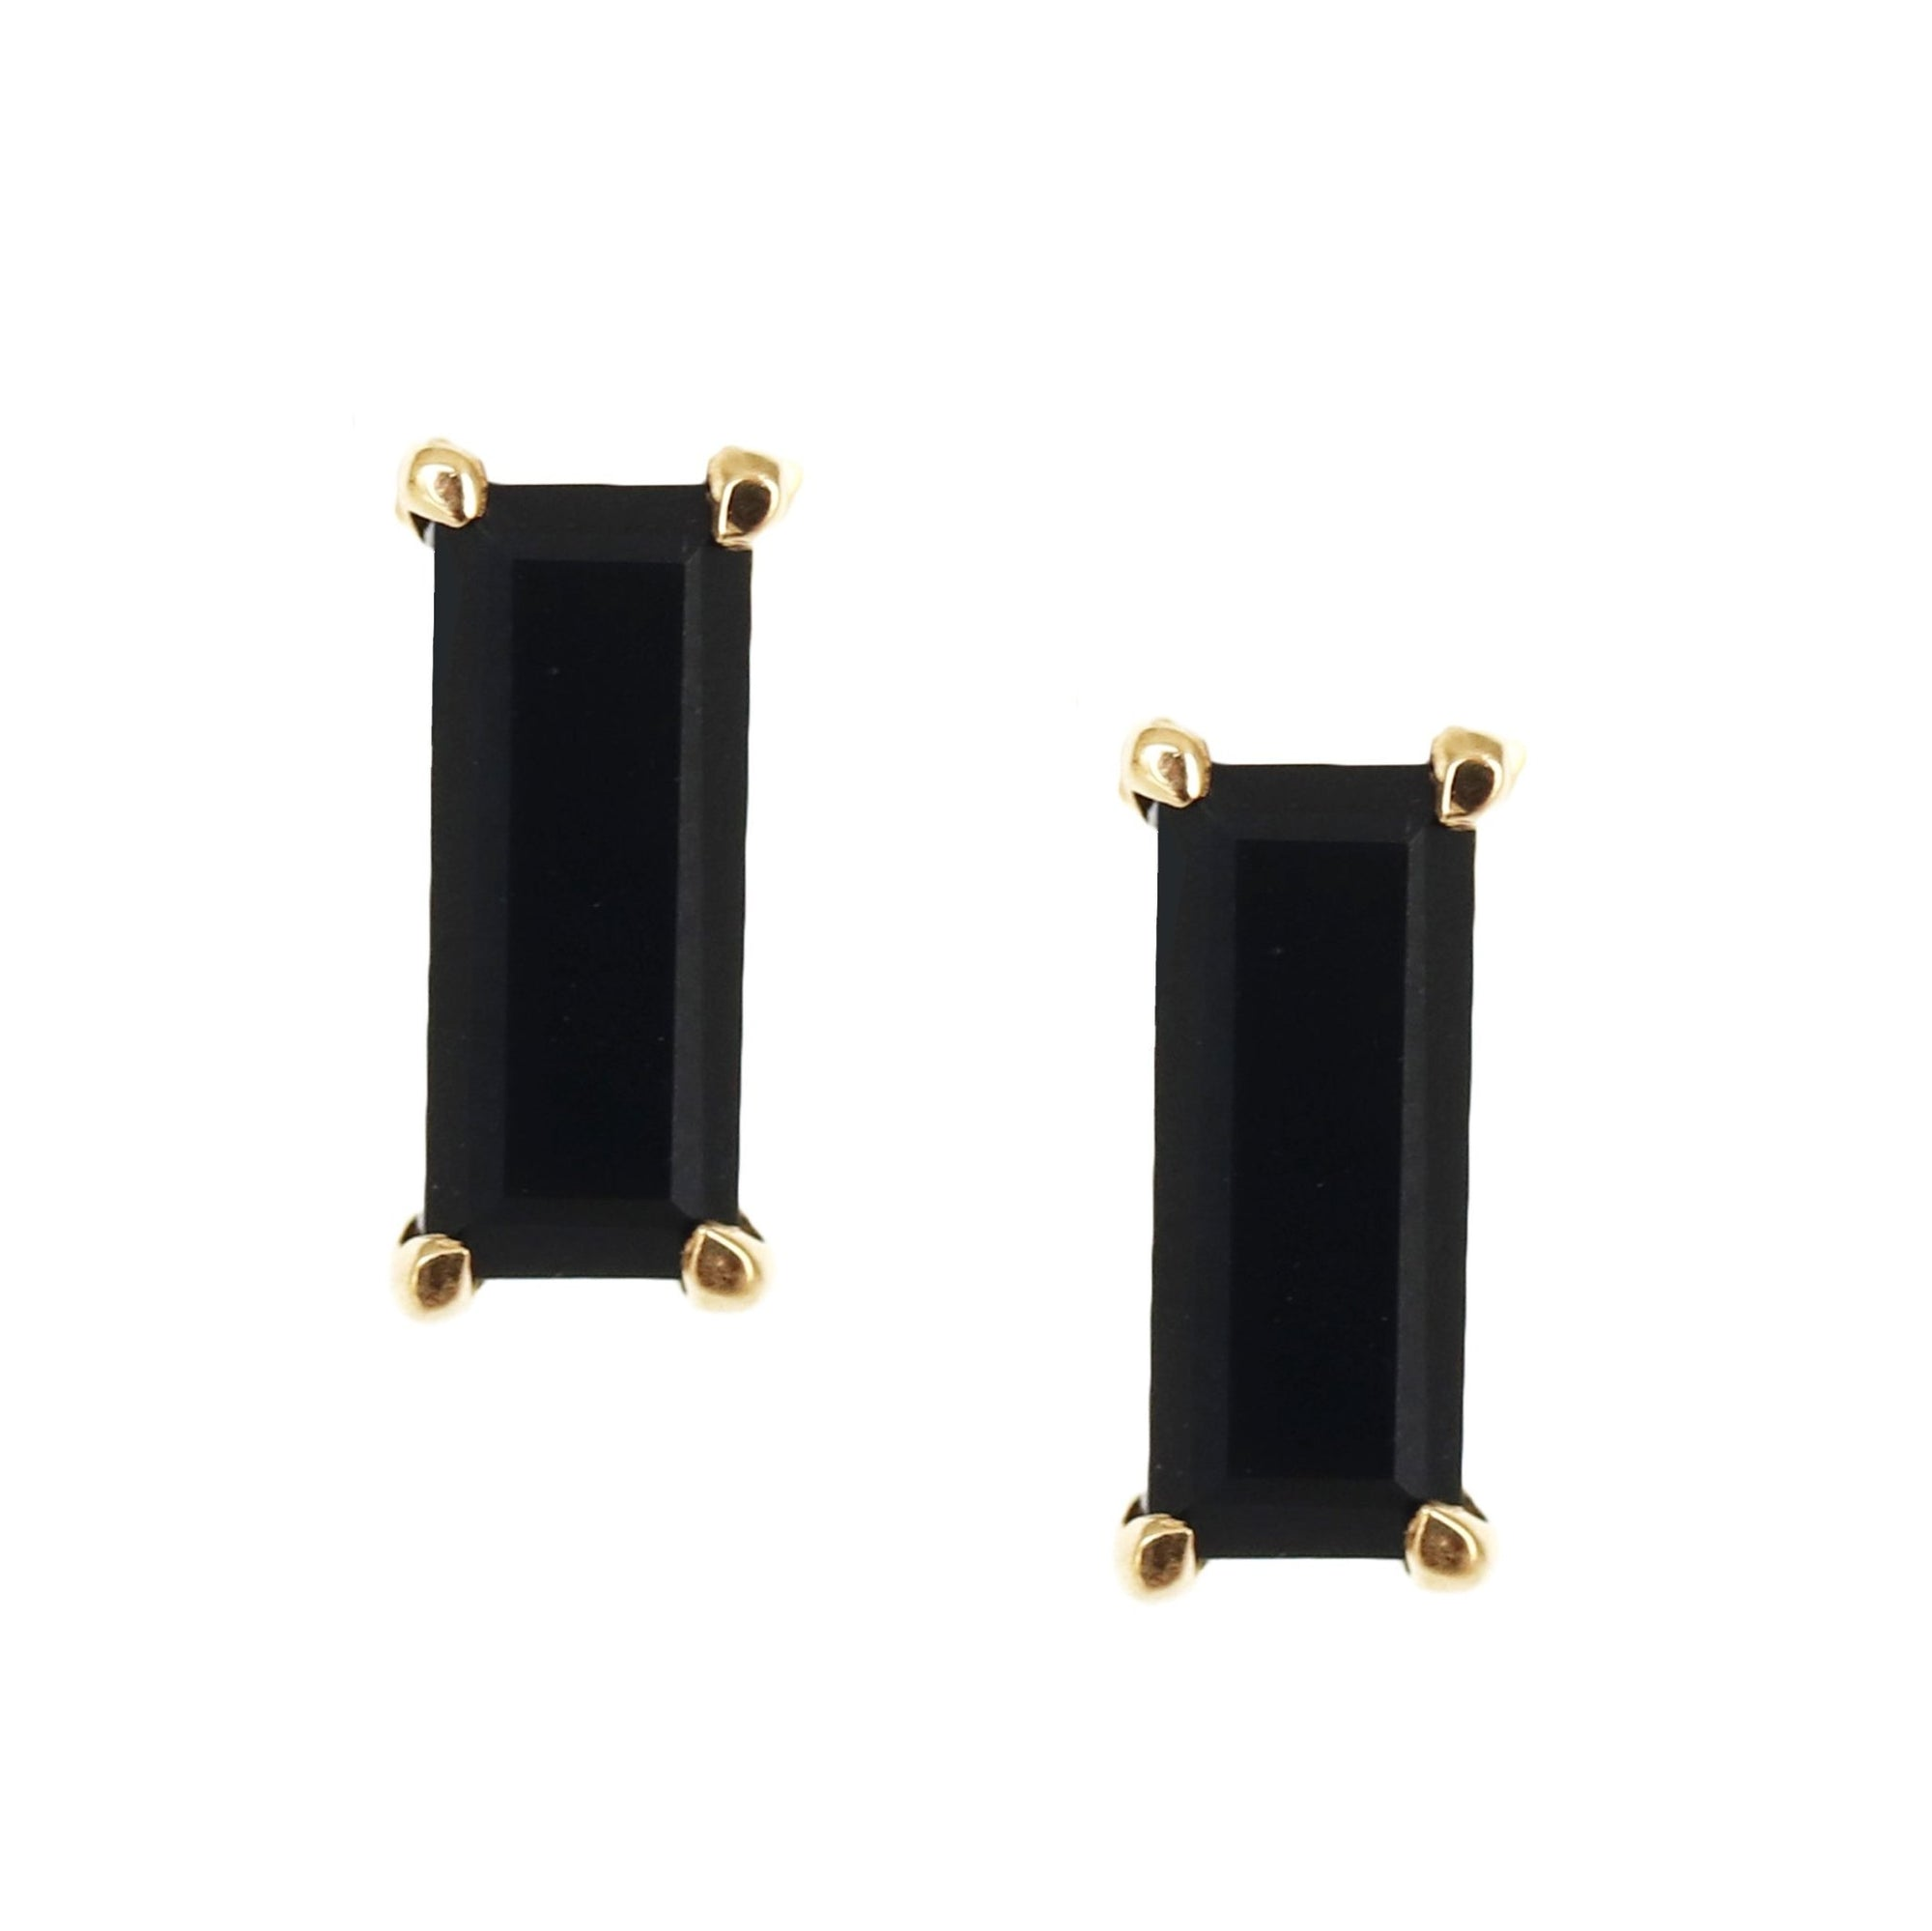 LOYAL STUD EARRINGS - BLACK ONYX & GOLD - SO PRETTY CARA COTTER